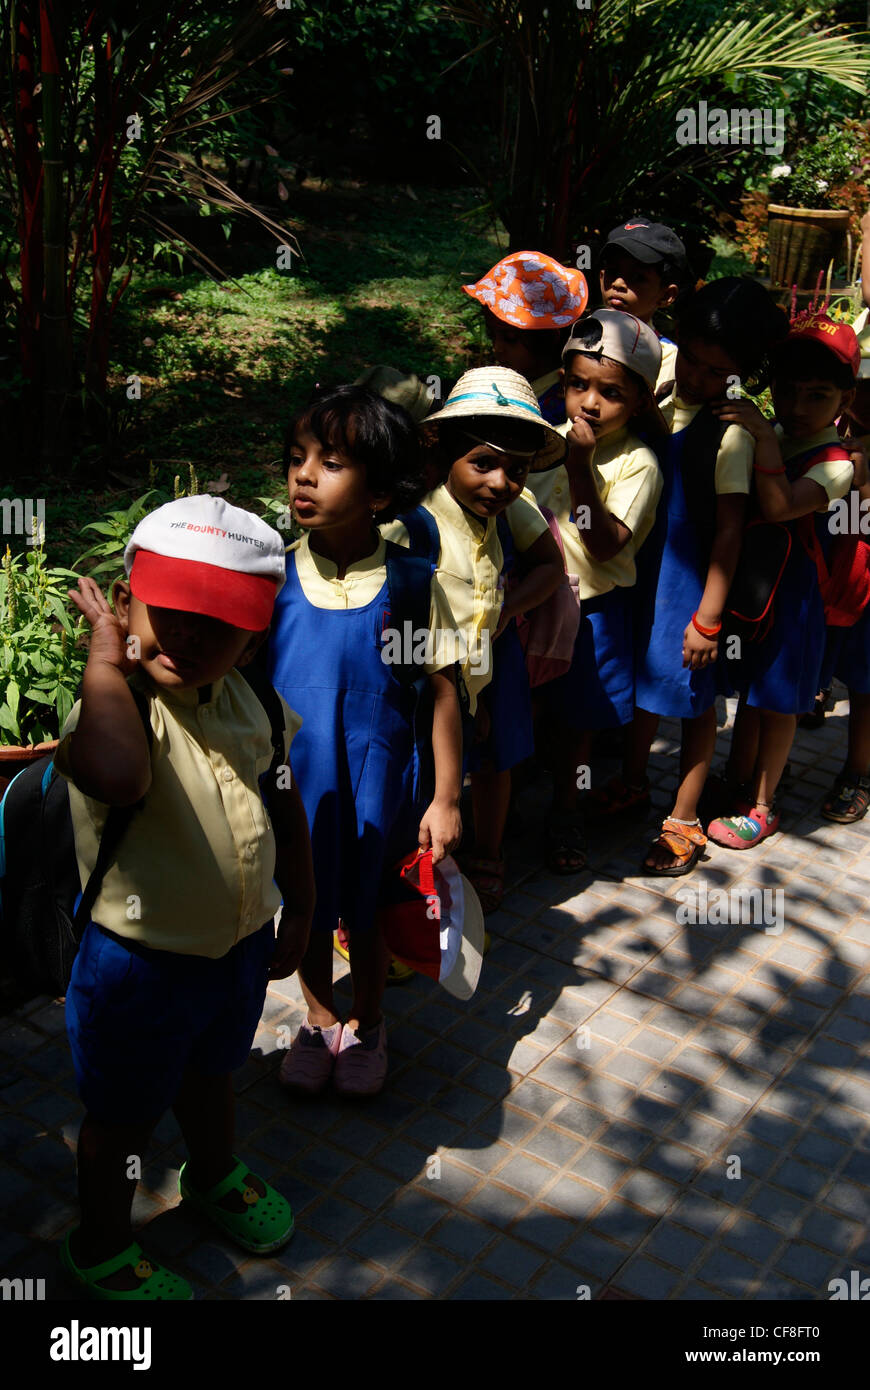 Lot of Nursery school students in Queue and enjoying garden scenery of Veli Tourist Village at Kerala,India - Stock Image